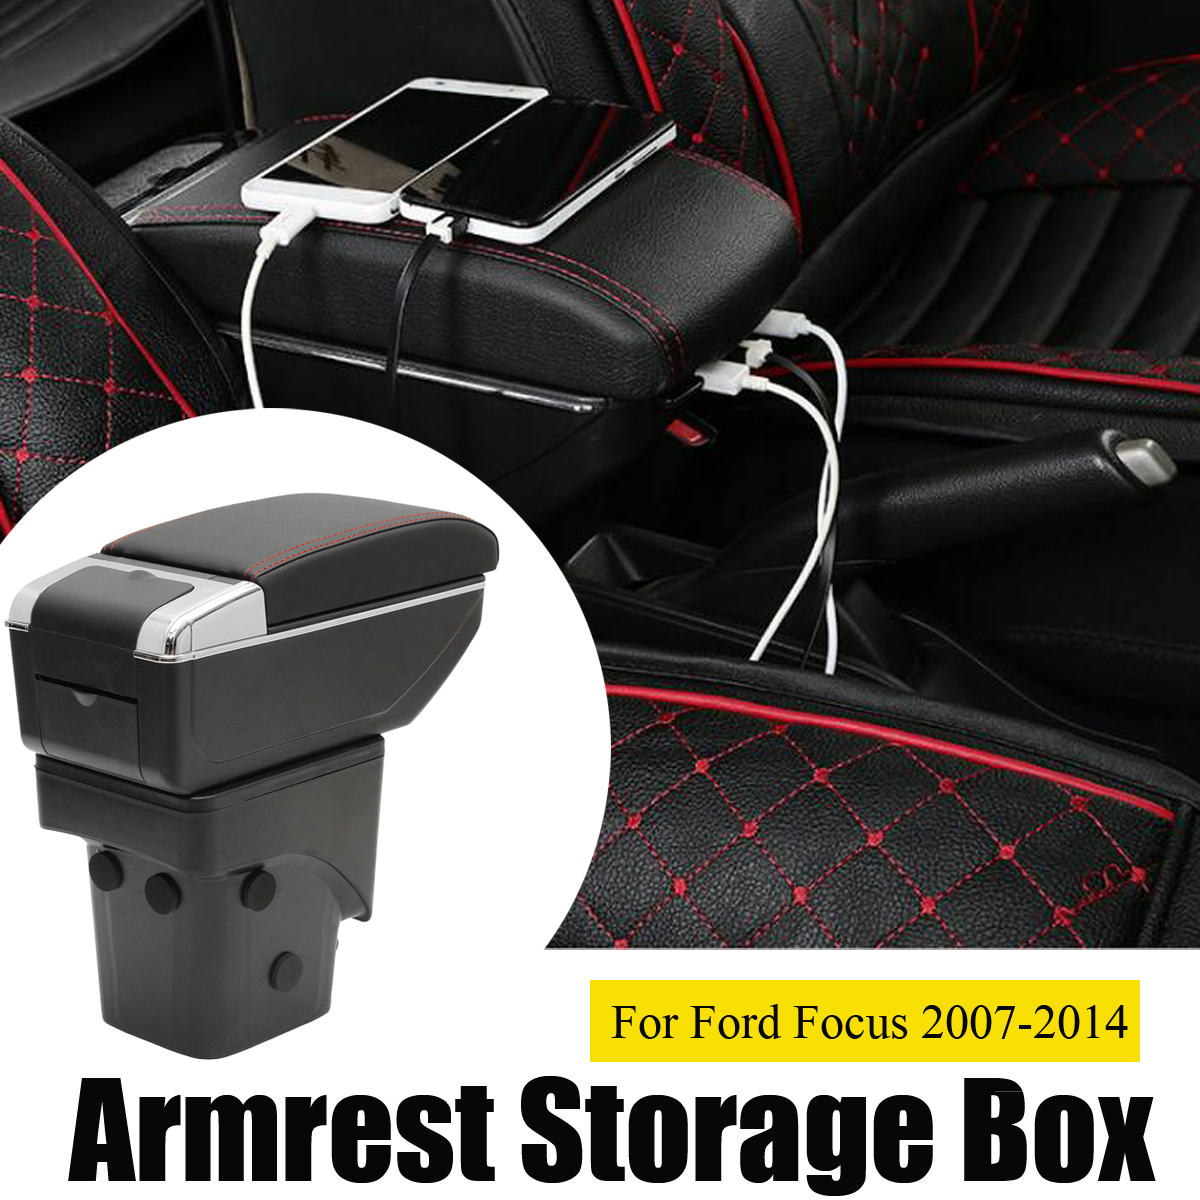 Armrest Storage Box for Fords for Focus 2007 2008 2009 2010 2011 2012 2013 2014 Dual Layer Leather Center Console Container center console armrest storage box elbow supporting for peugeot 2008 3008 1007 2006 2013 2014 2015 2016 2017 black gray beige